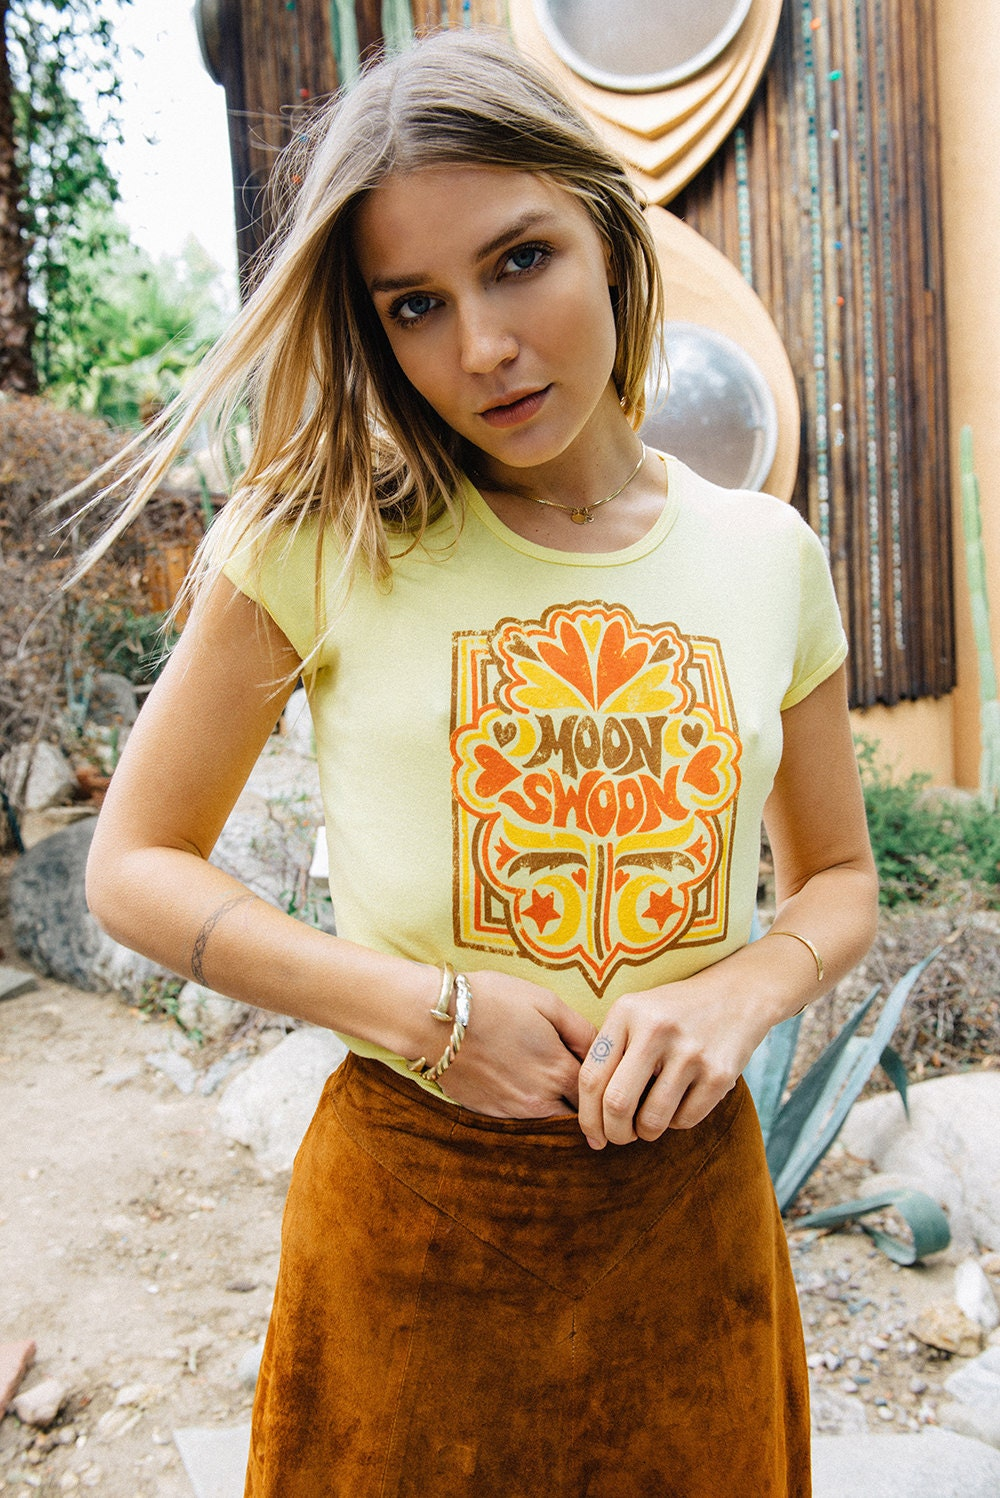 Moon Swoon Vintage 70s T Shirt Womens